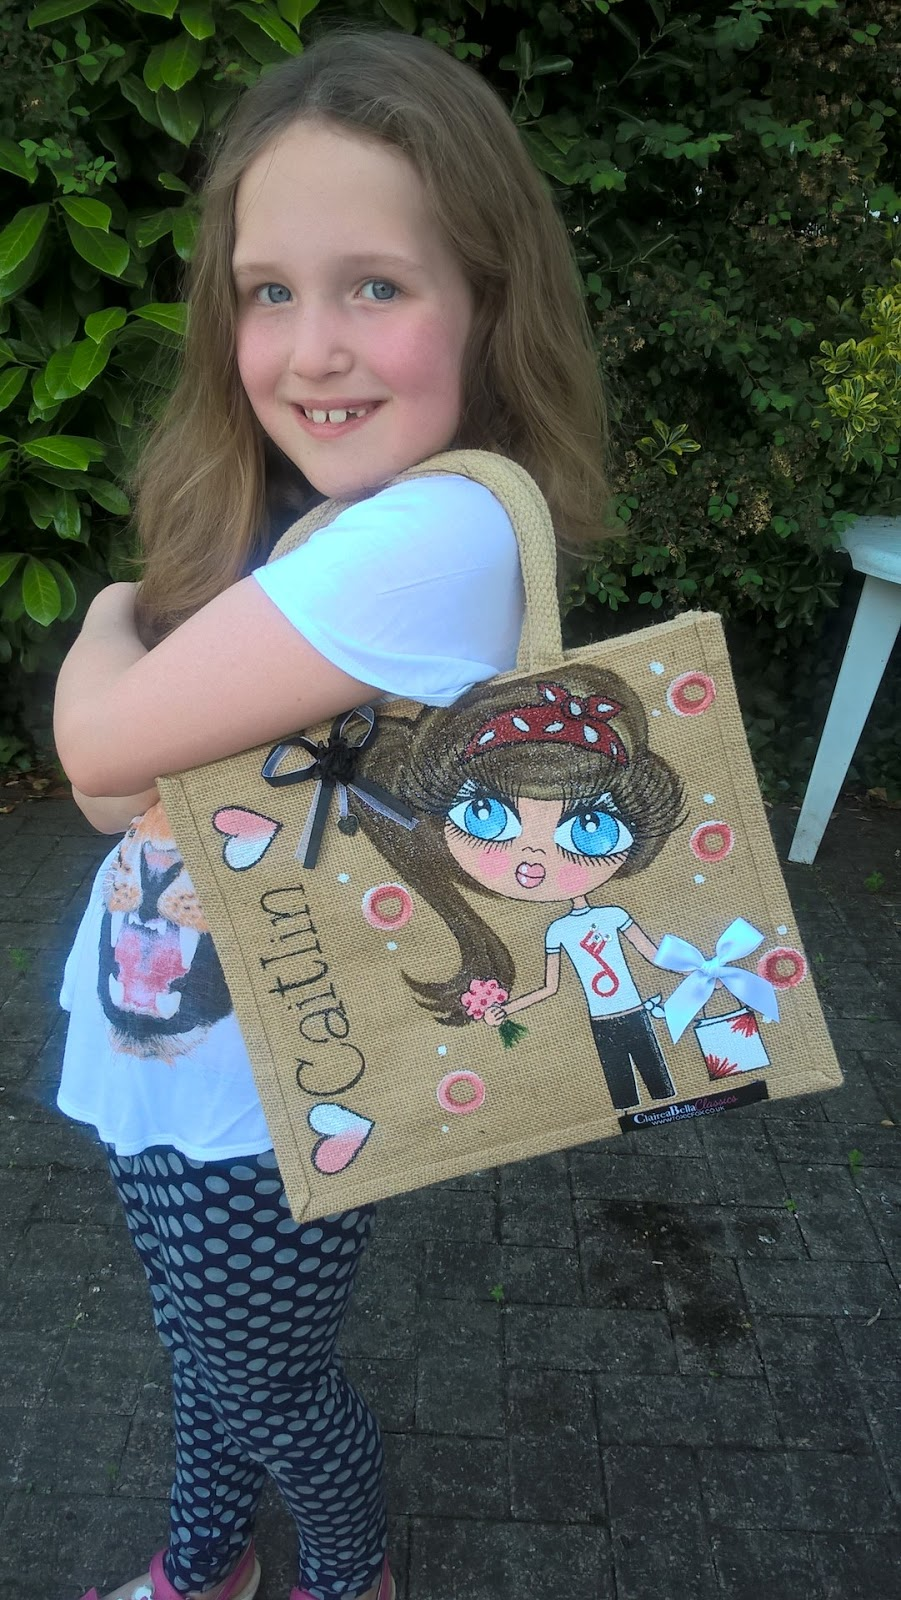 Review: ClaireaBella Medium Jute Bags for Girls